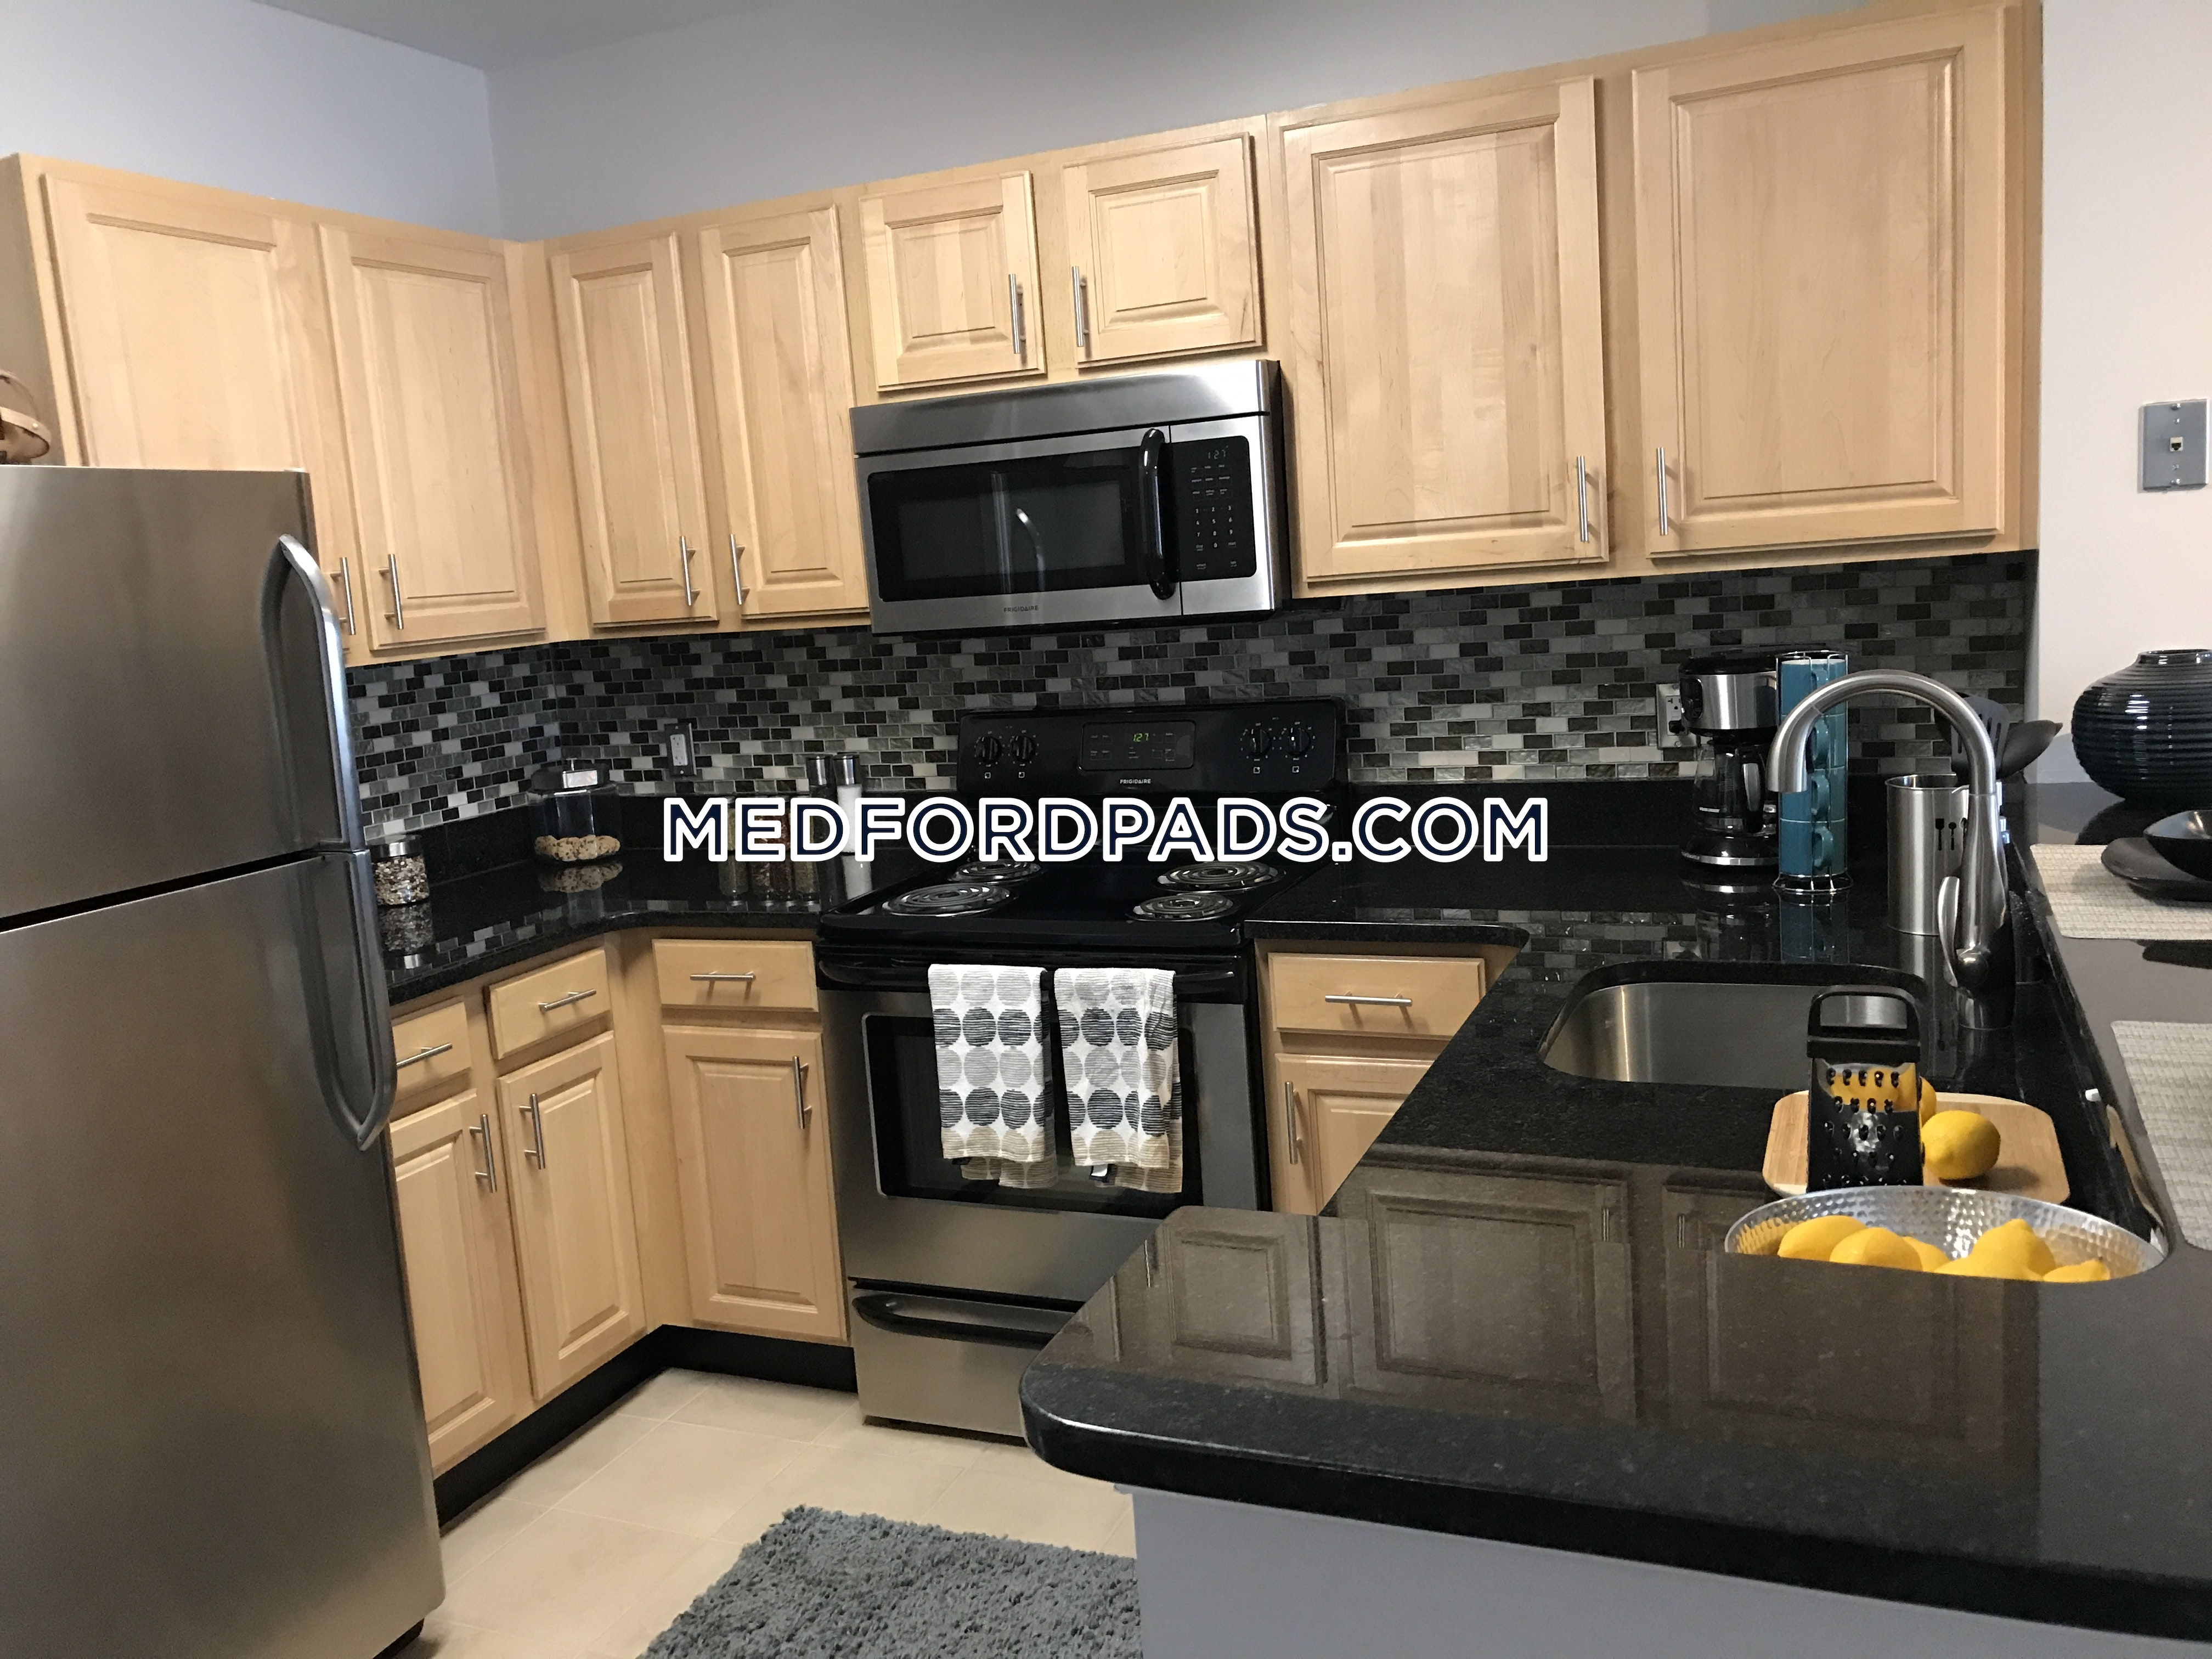 Quincy Apartments | Apartments for Rent in Quincy MA